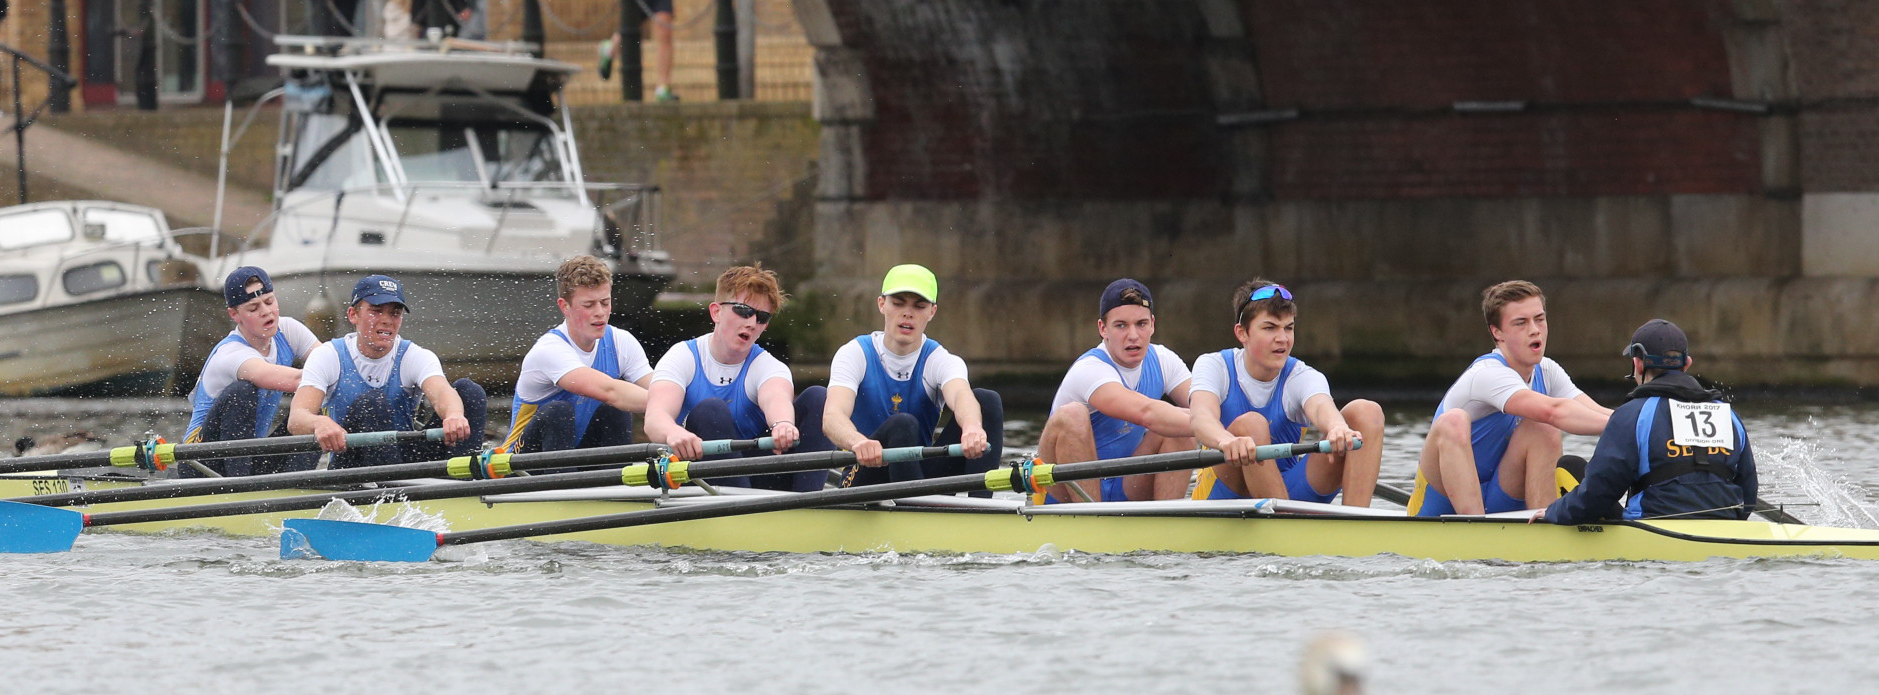 St Edward's head for victory at Kingston (from left): Valentin Peiker, Pasha Tinkov, George Hayter, James Schofield, Aleks Elezovic, Ben Sthamer, Nicola dei Rossi, Campbell Nelson, Sam Shuker  Picture: Iain Weir